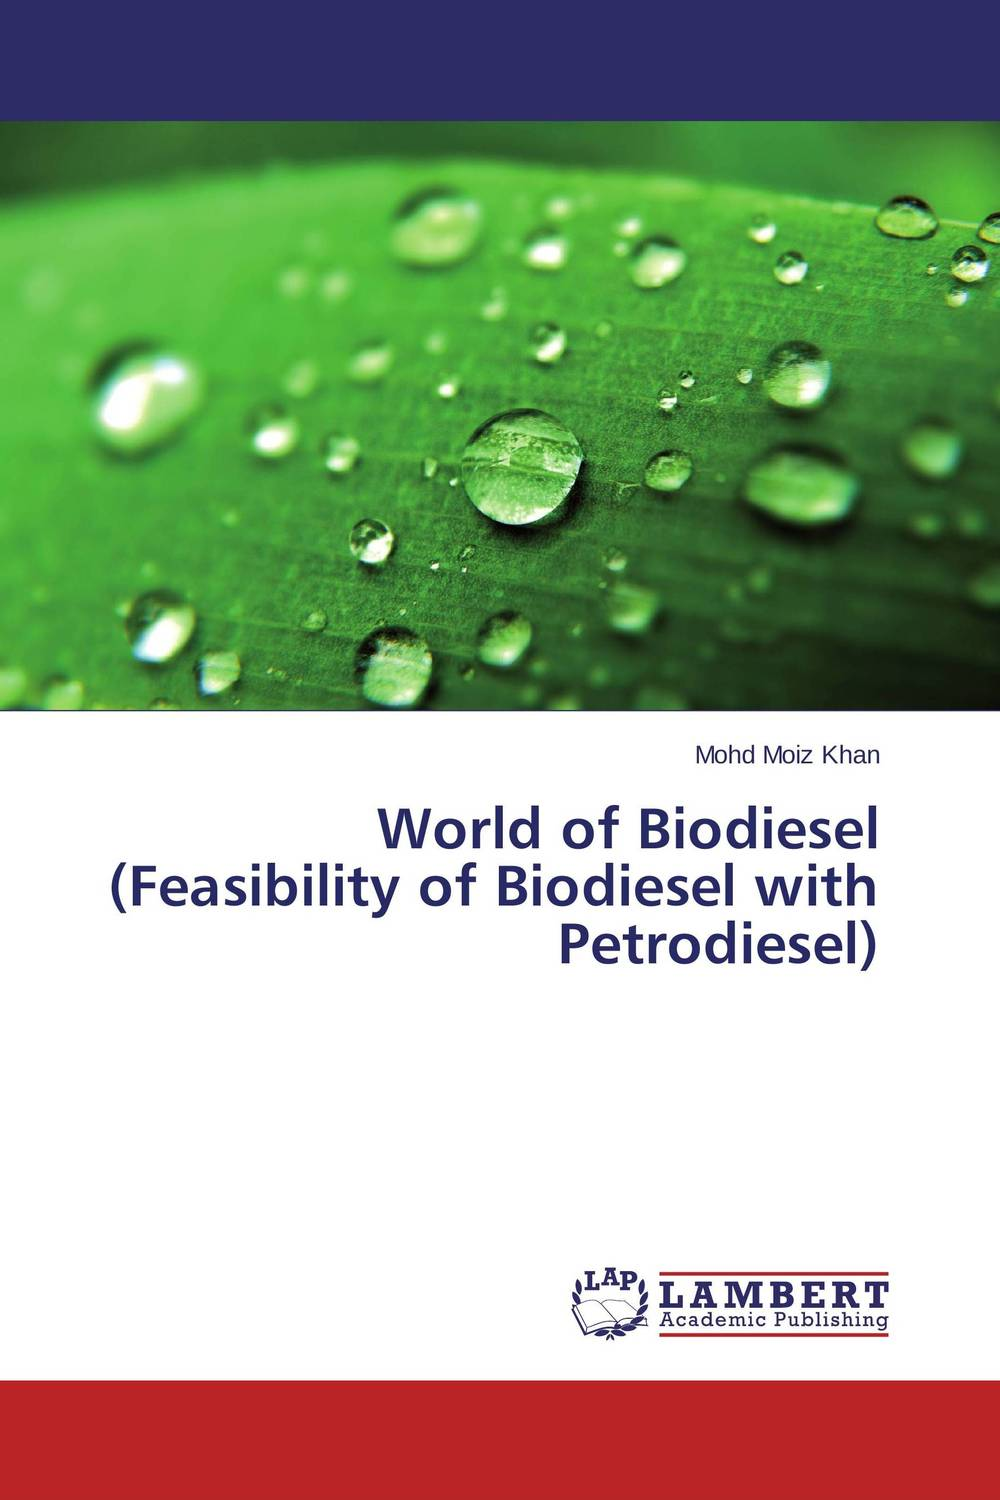 World of Biodiesel (Feasibility of Biodiesel with Petrodiesel) experimental investigation of diesel engine fueled by biodiesel blends